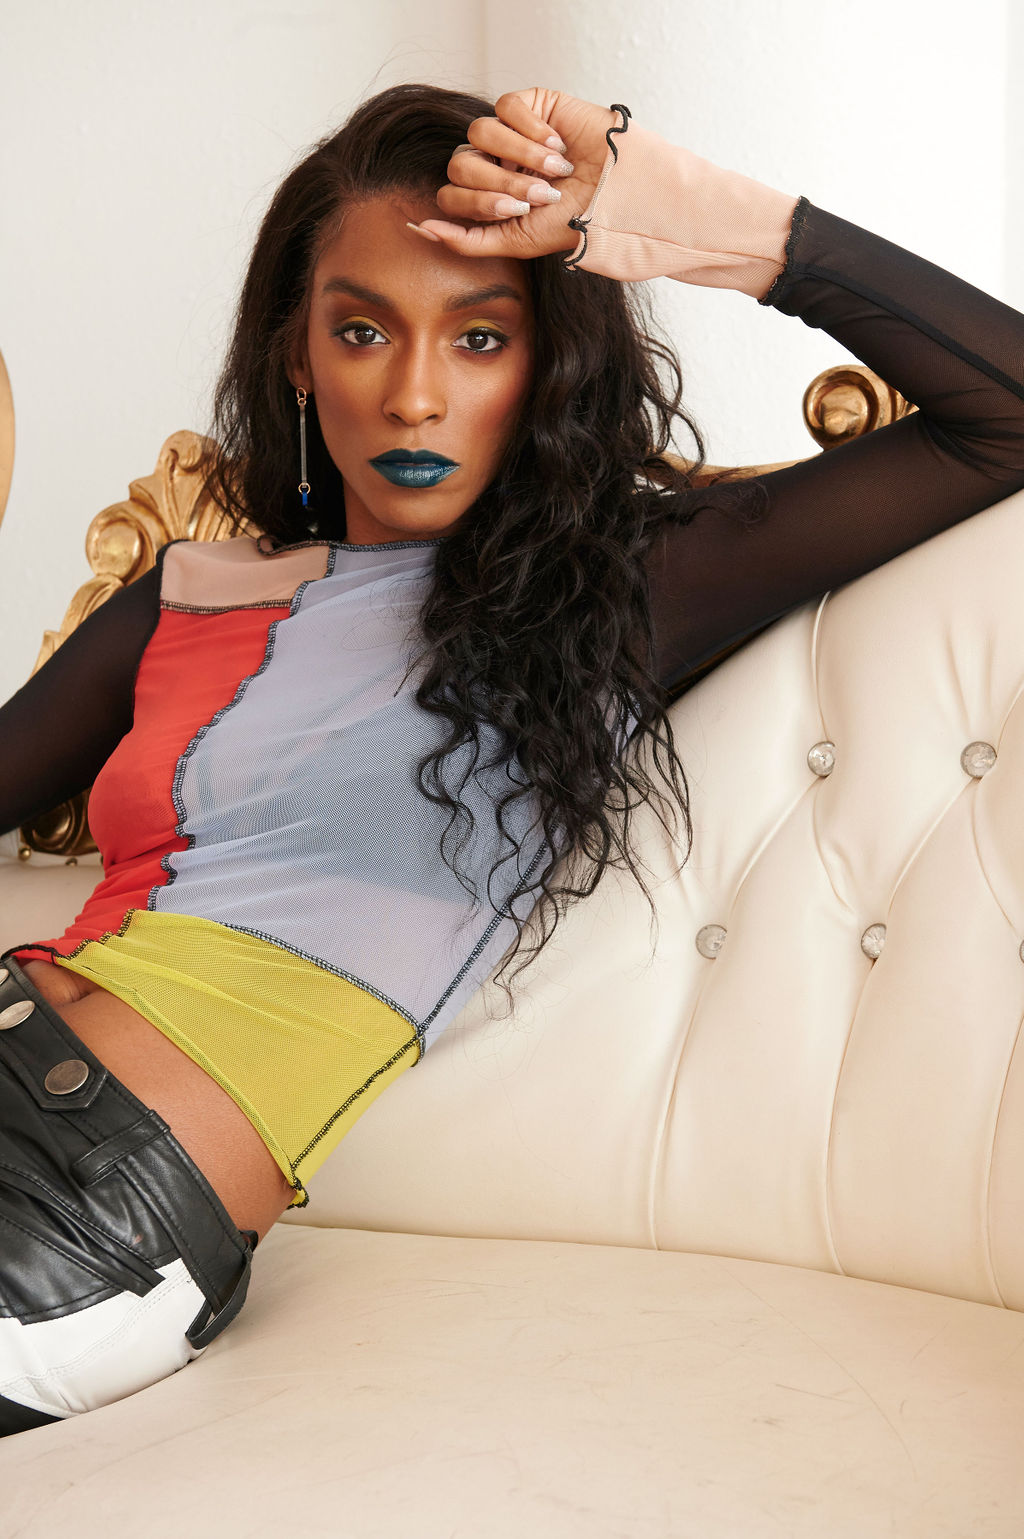 Annju'lia Smalls in Zadig&Voltaire-reaching hand-sheldon botler photography-color blocking-wear who you are-blue lipstick